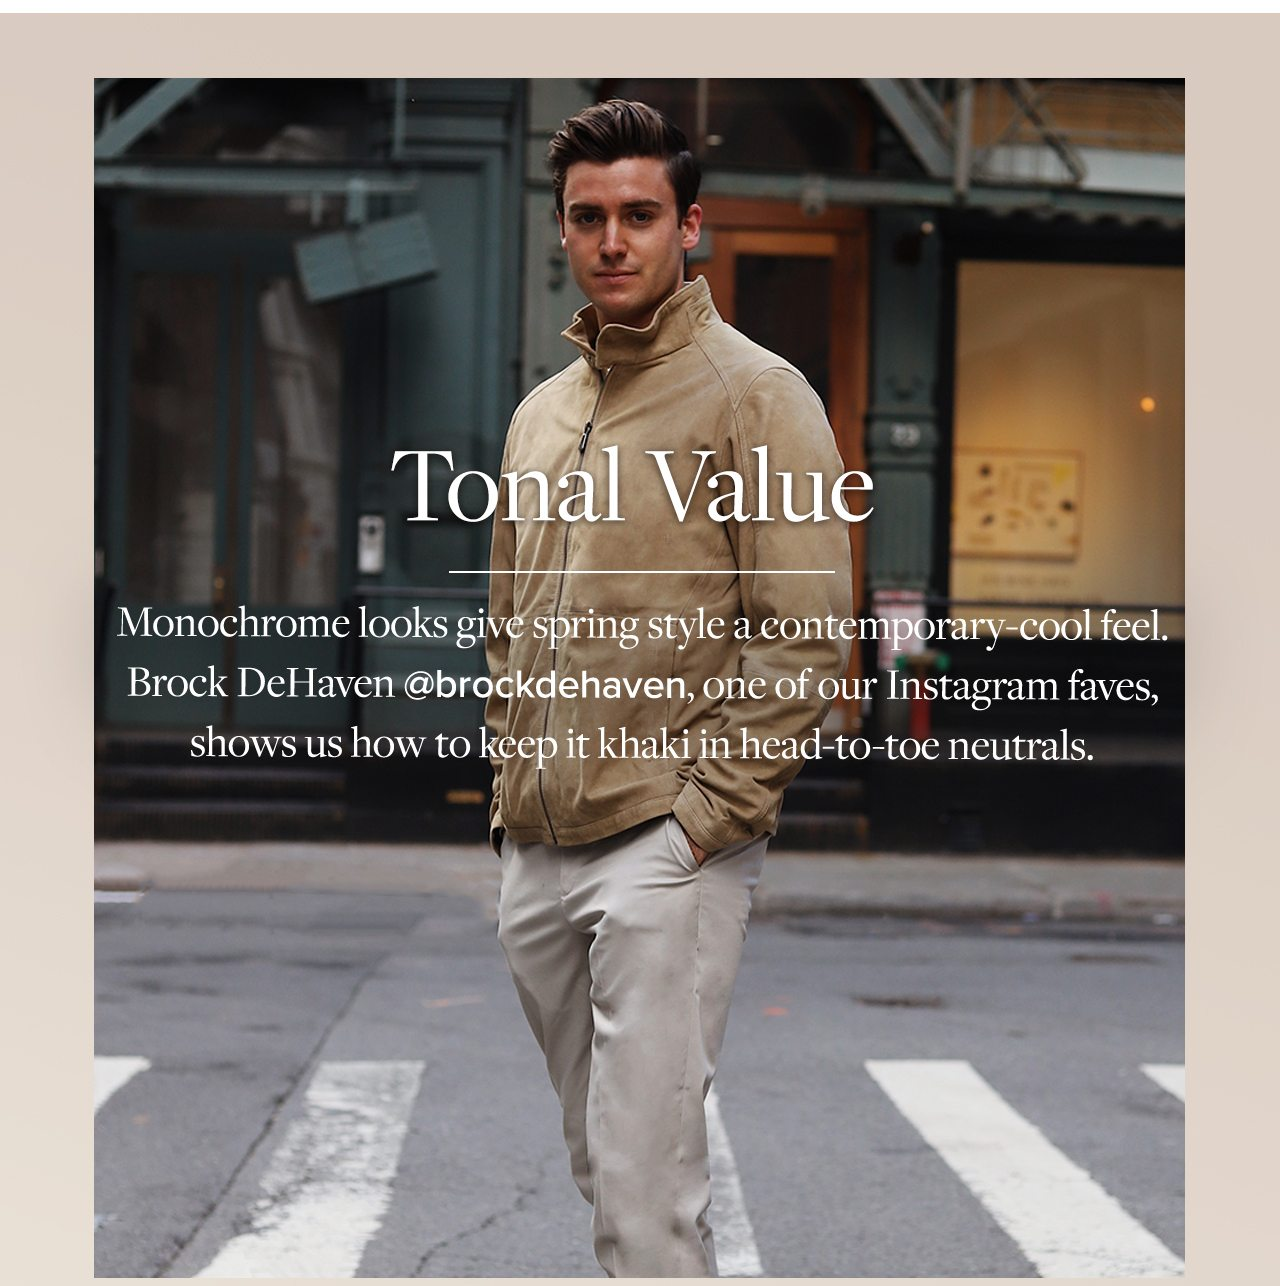 Tonal Value Monochrome looks give spring style a contemporary-cool feel. Brock DeHaven @brockdehaven, one of our Instagram faves, shows us how to keep it khaki in head-to-toe neutrals.